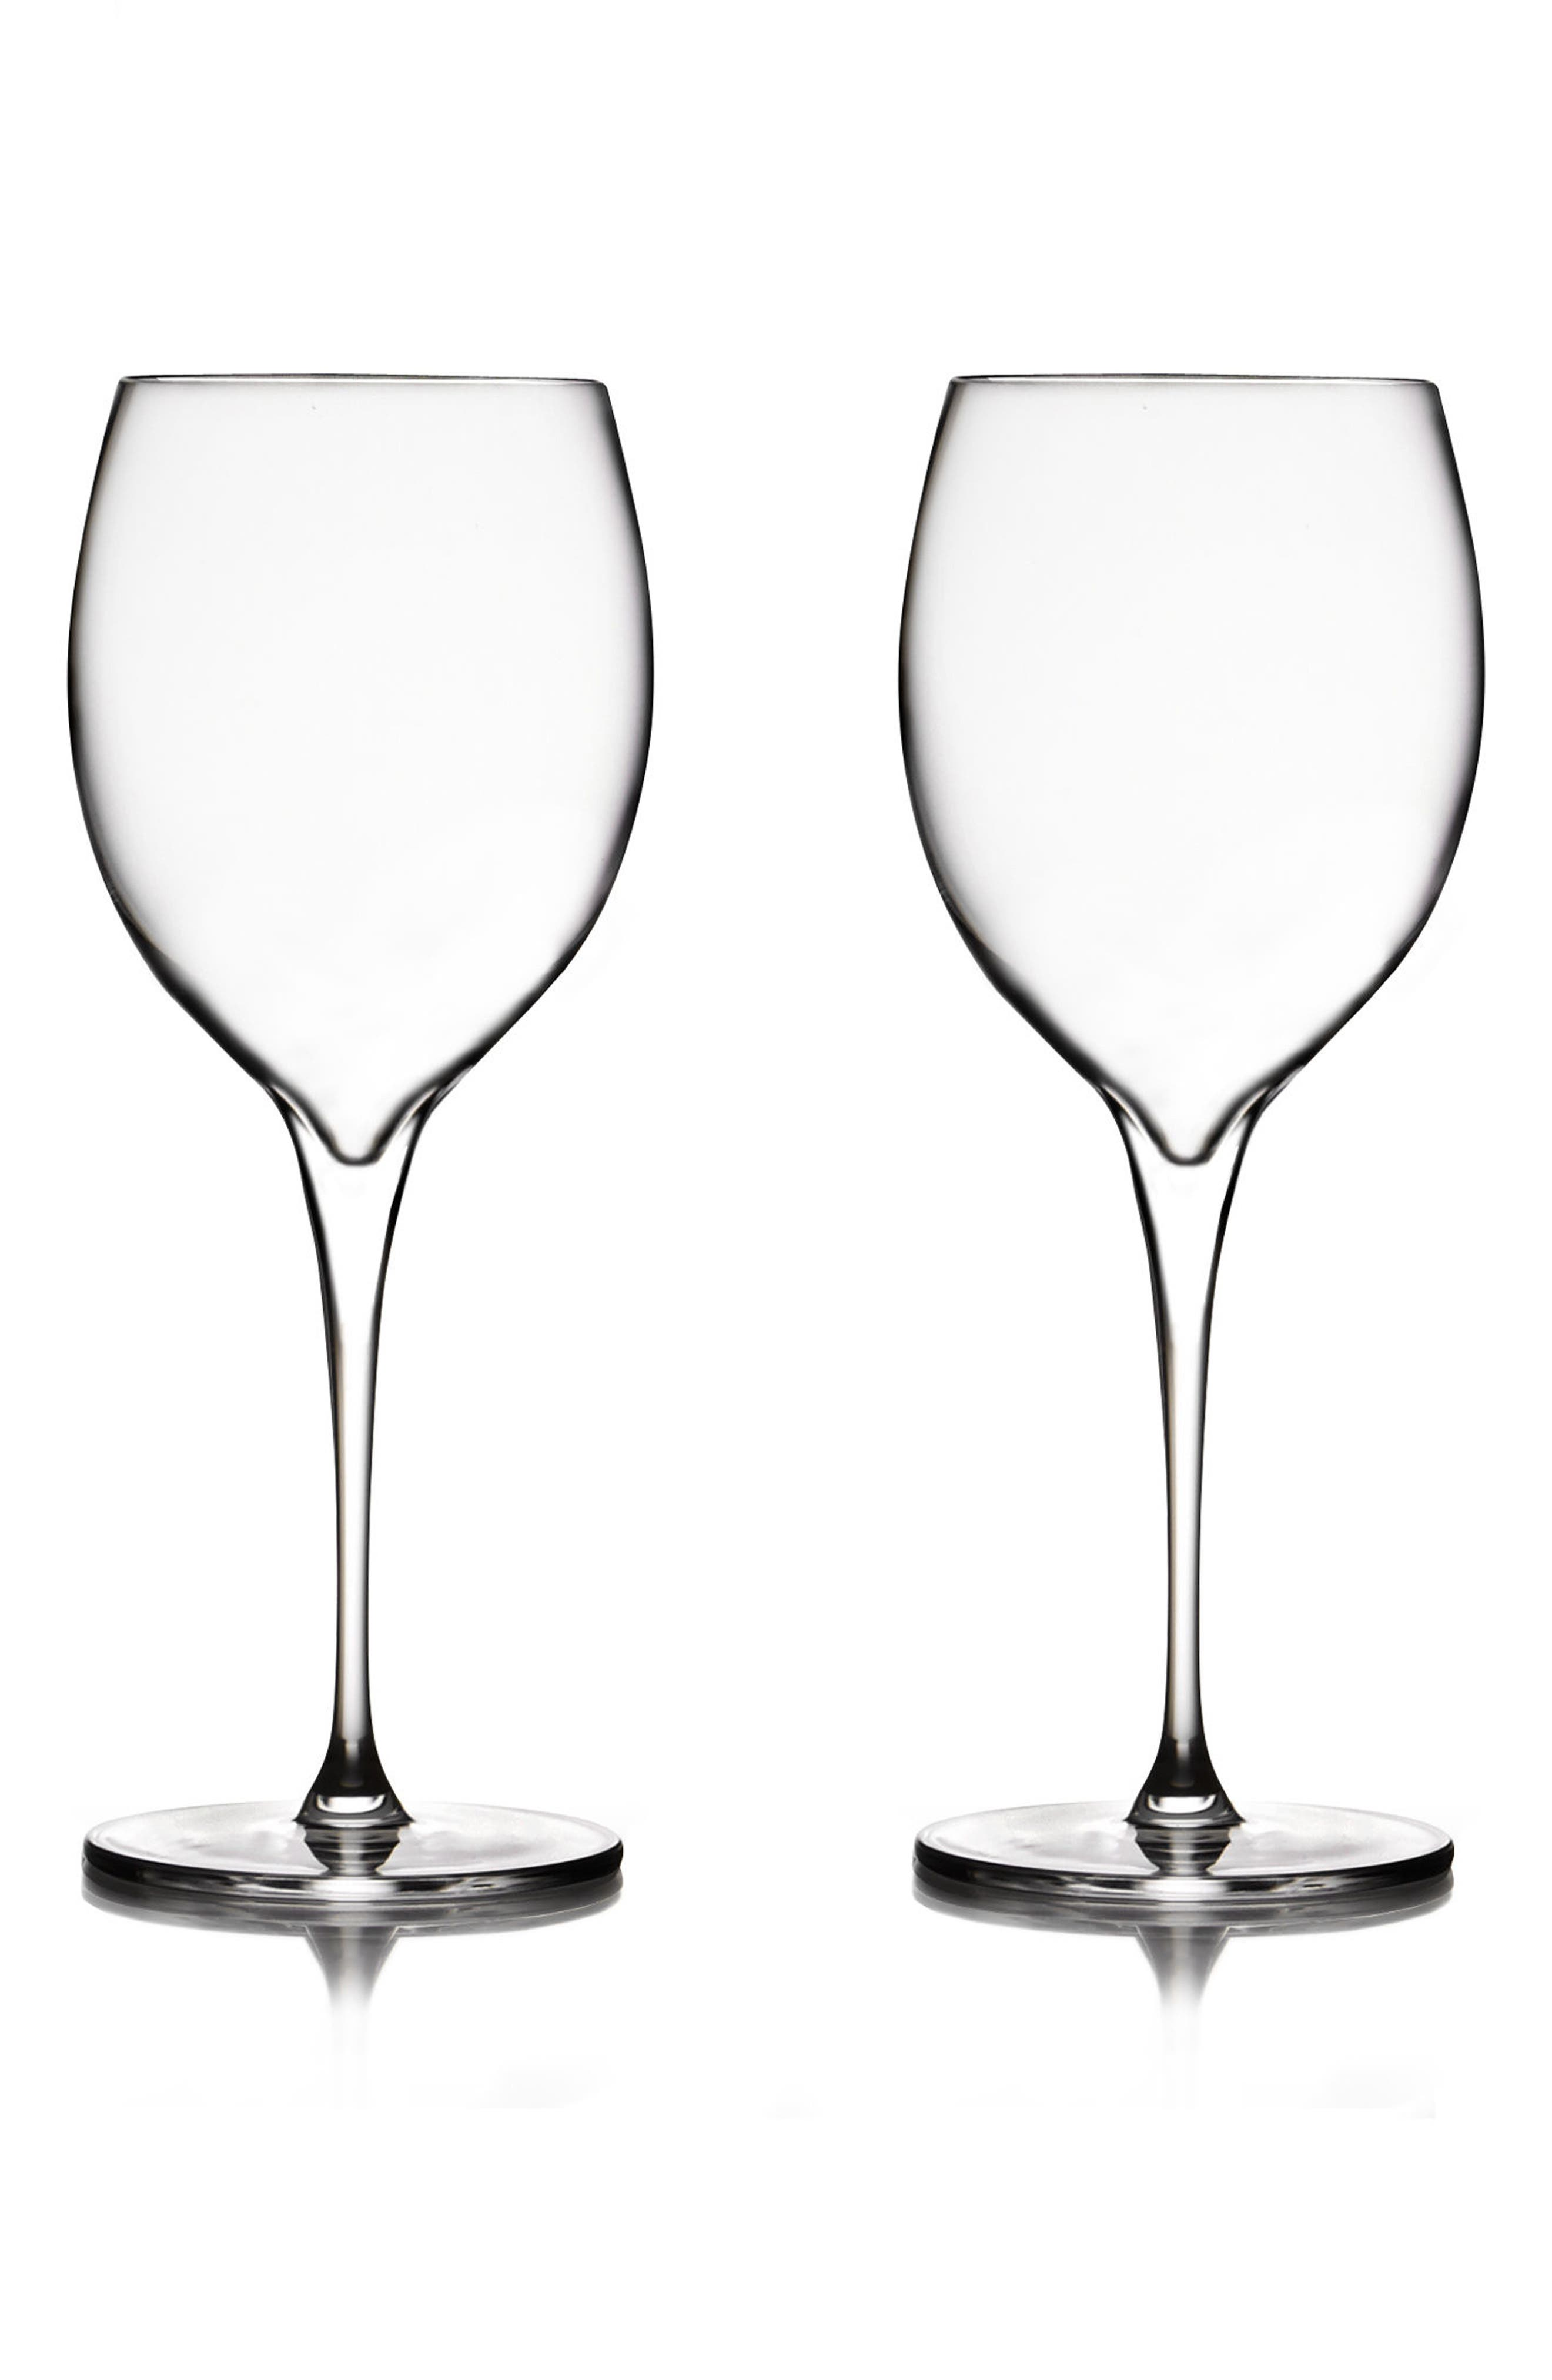 Vie Set of 2 Chardonnay Glasses,                             Main thumbnail 1, color,                             Clear